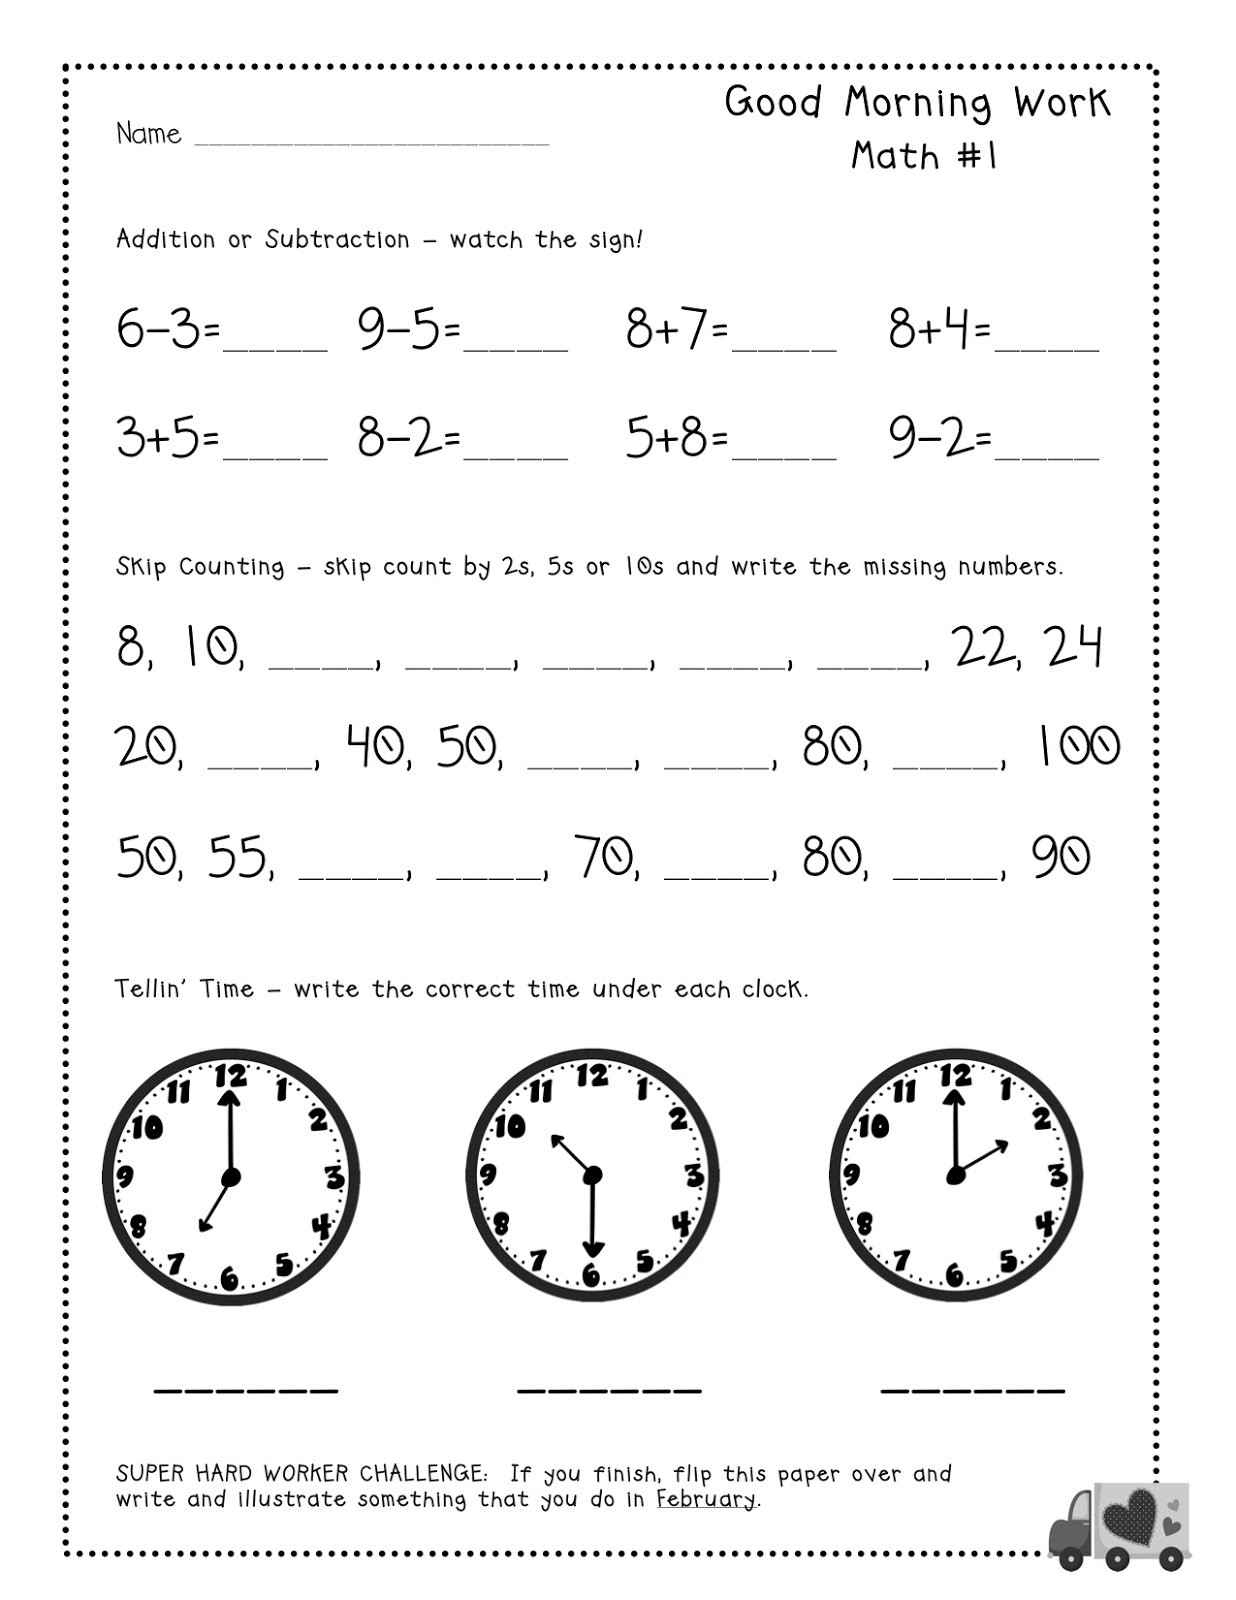 Worksheet School Work For 3rd Graders worksheet 3 grade work mikyu free money math worksheets 3rd varietycar printable 4 fractions for 4th worksheets